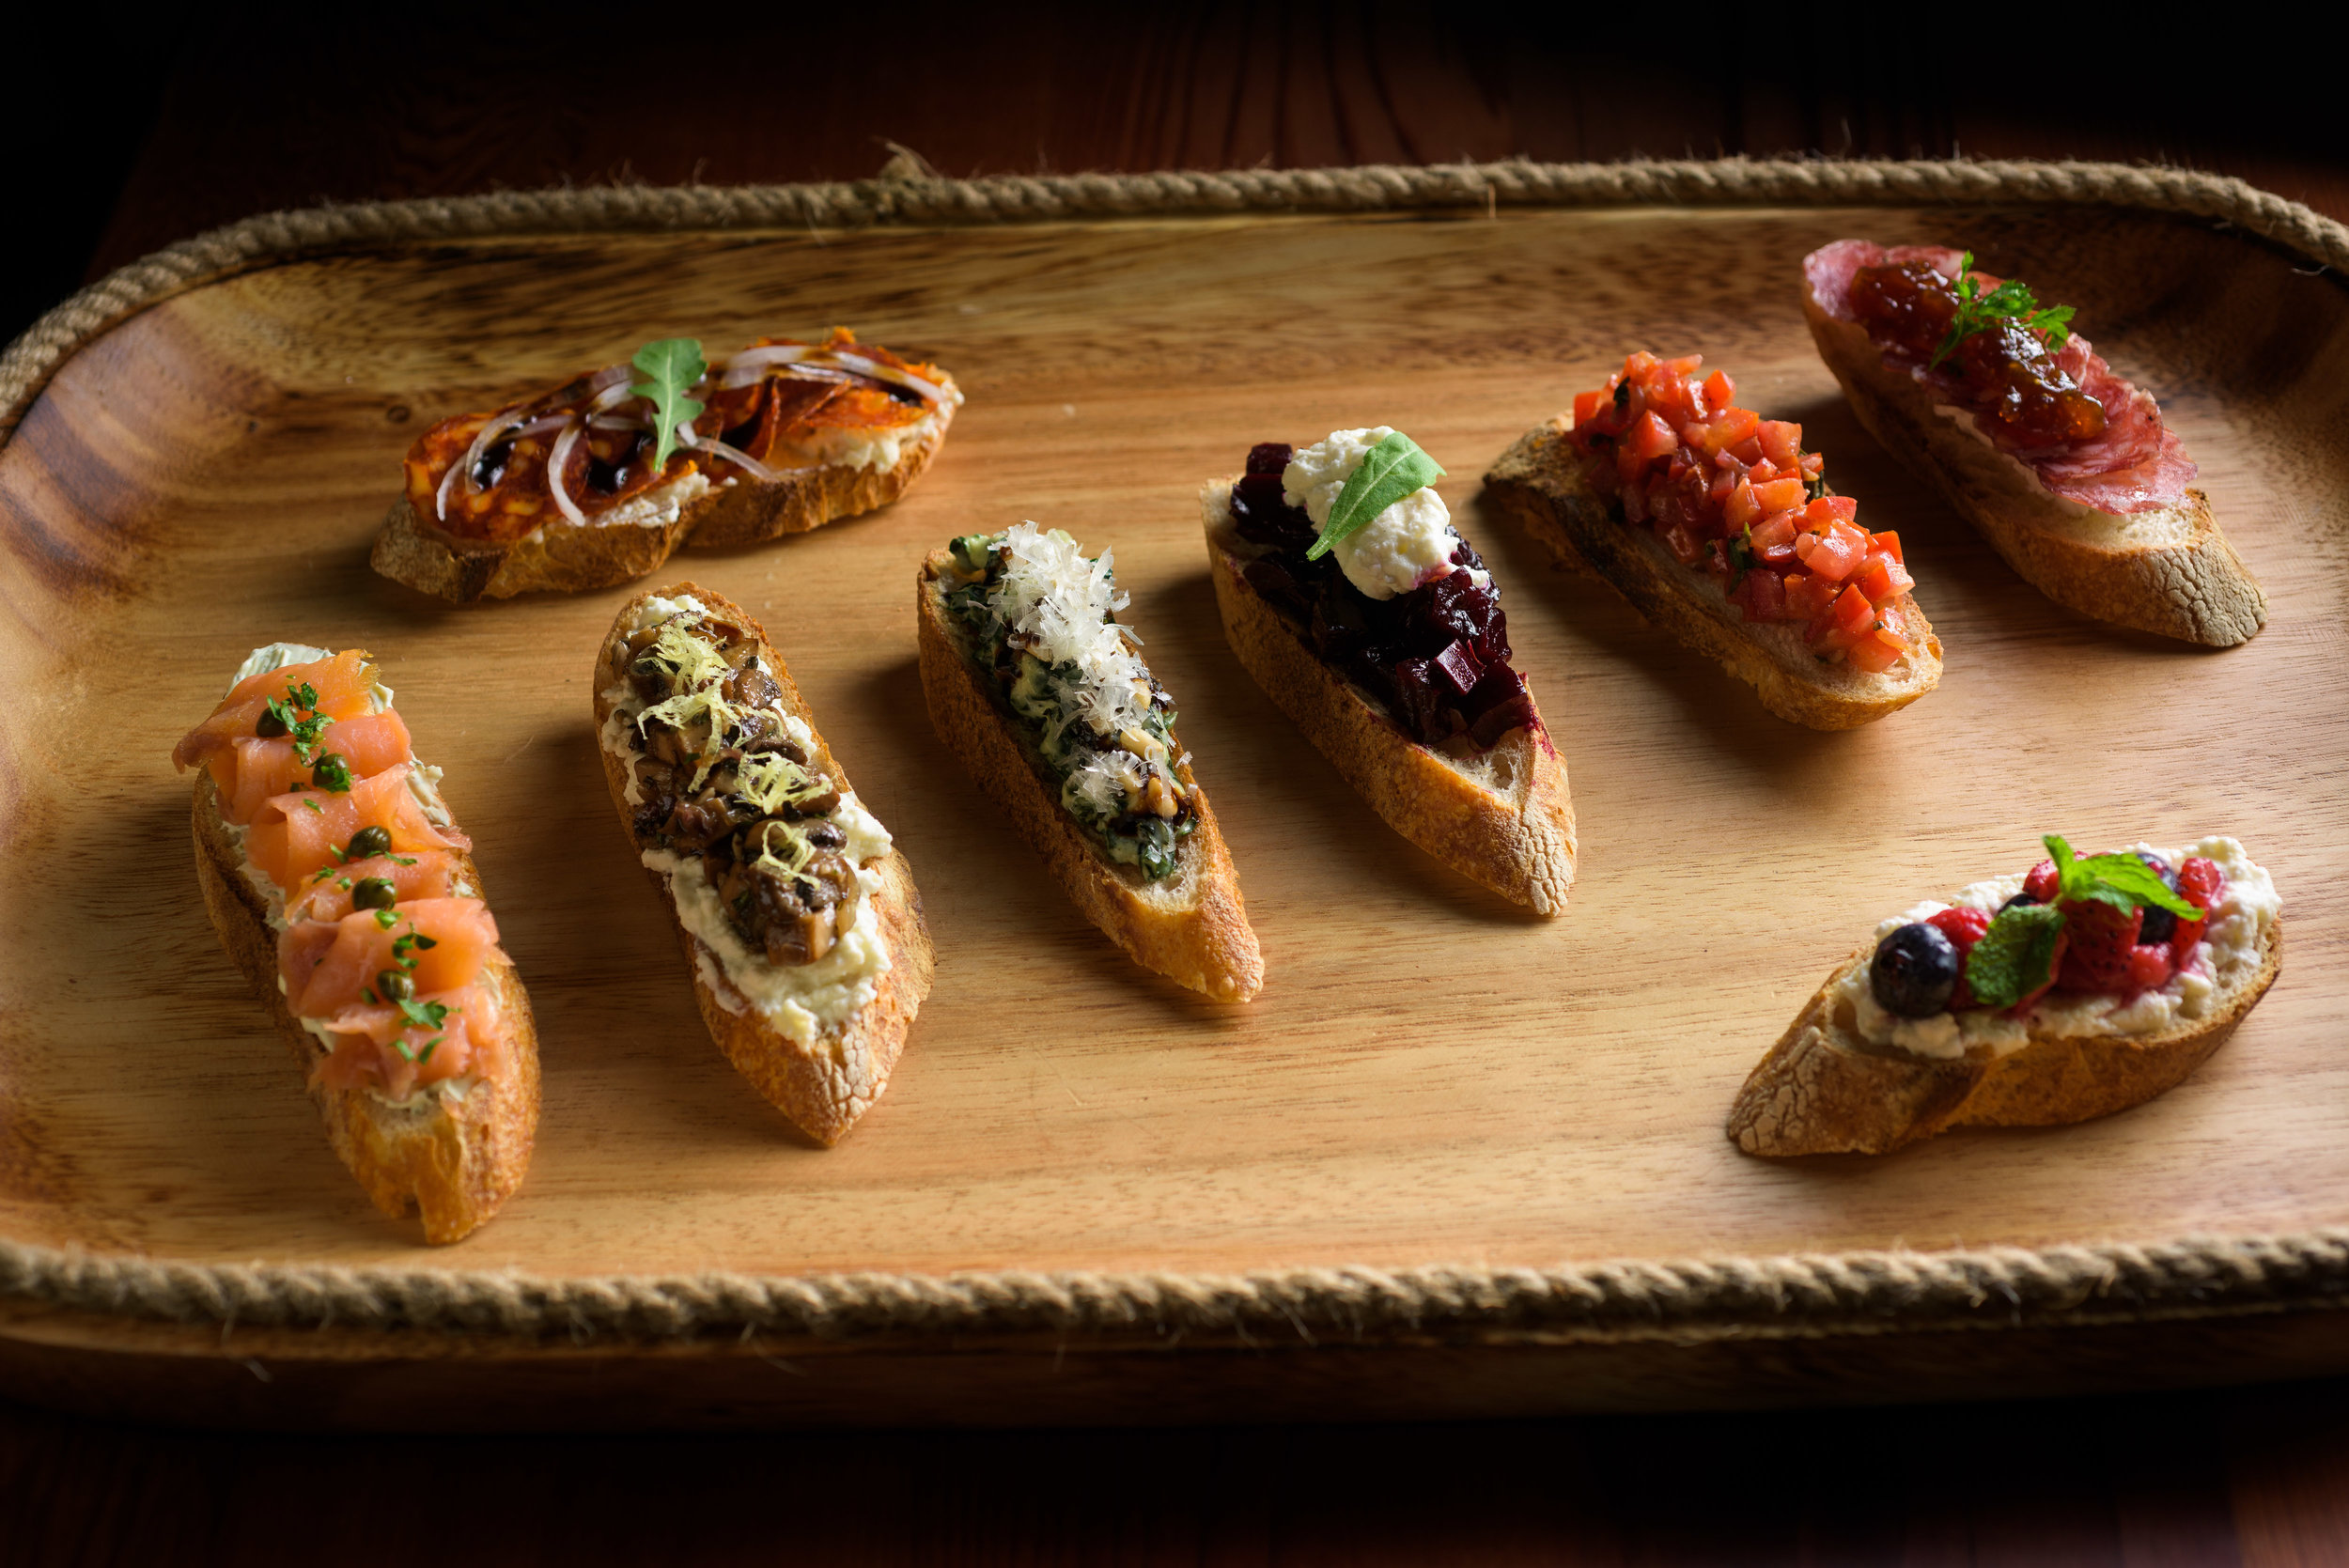 platter of various flatbread appetizers - Cupertino food photography - RootStock Wine Bar - photos by Bay Area commercial photographer Chris Schmauch